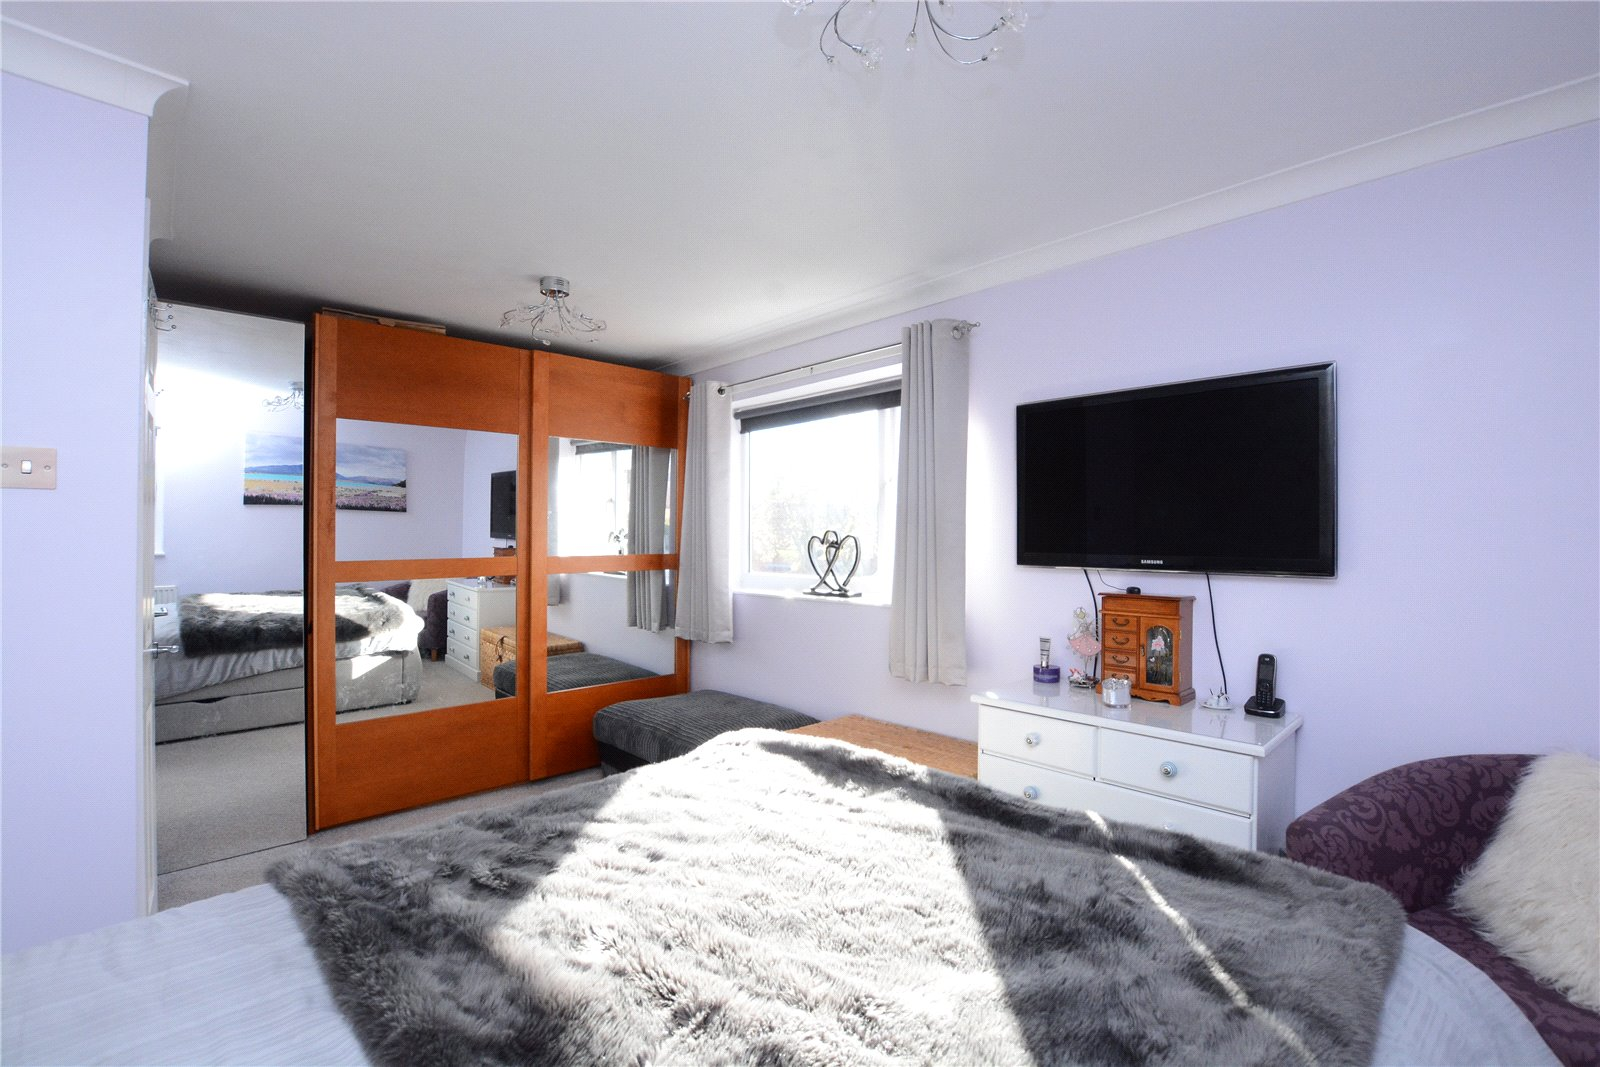 property for sale in Wetherby, interior double bedroom, sliding wardrobe doors